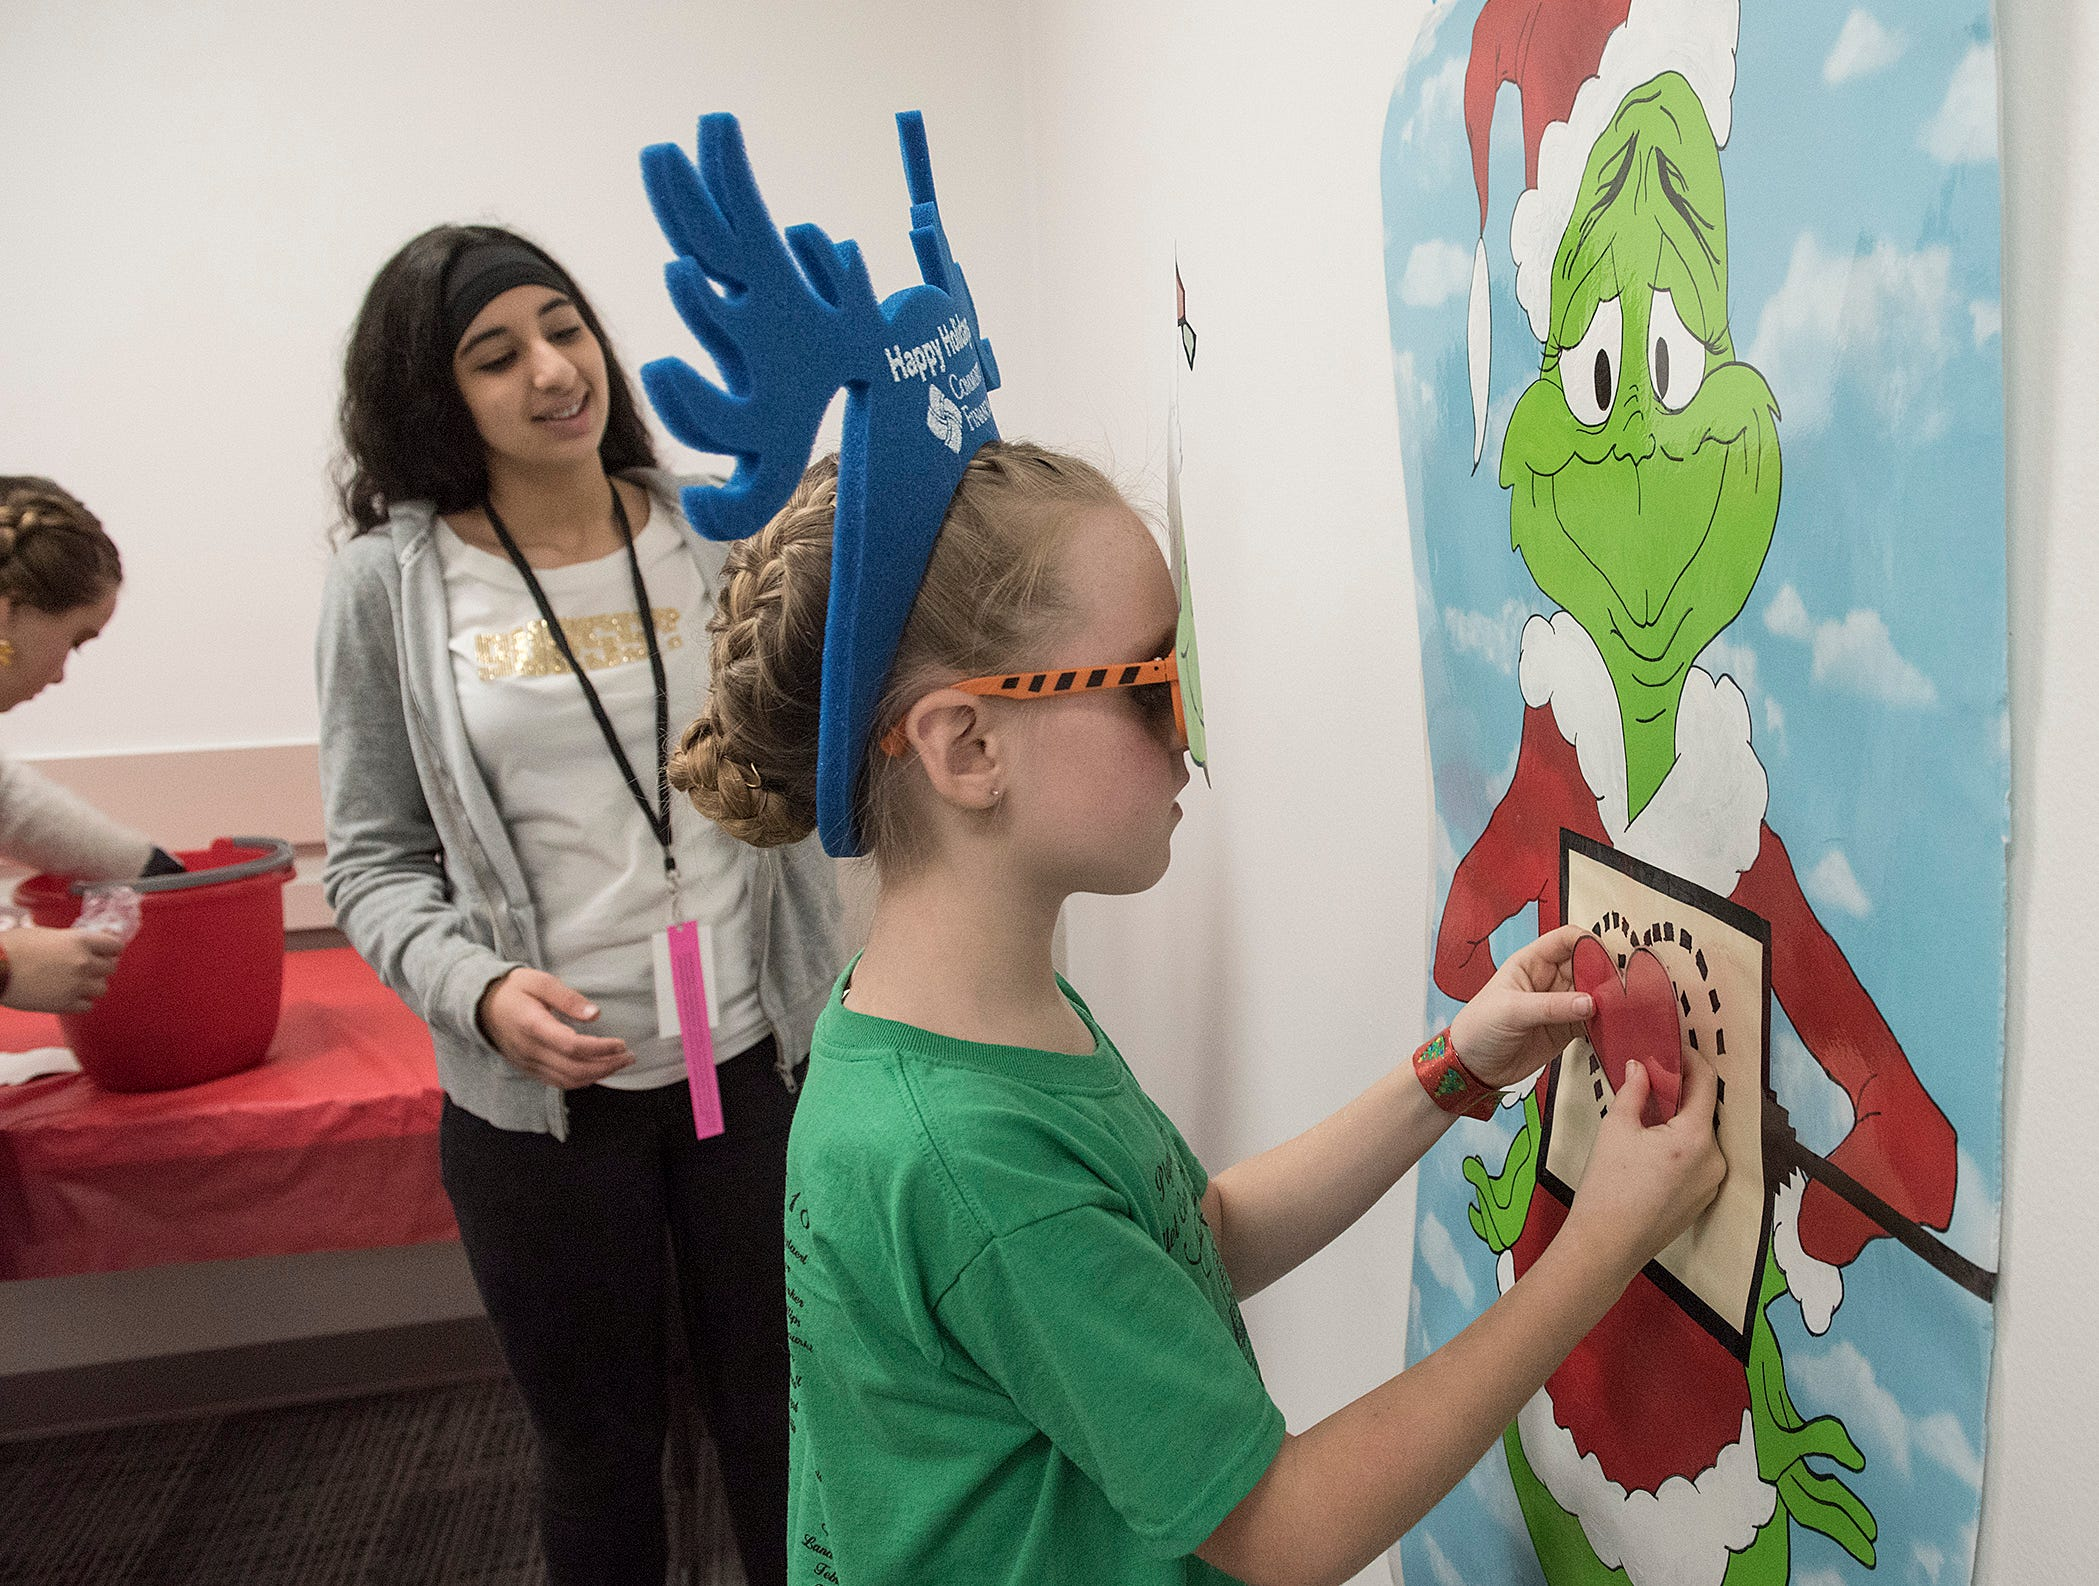 In the Goodfellows game room, 9 year old Marina Miekstyn places the heart in just the right place on the Grinch. Volunteer Shereen Alyasiry gives encouragement.